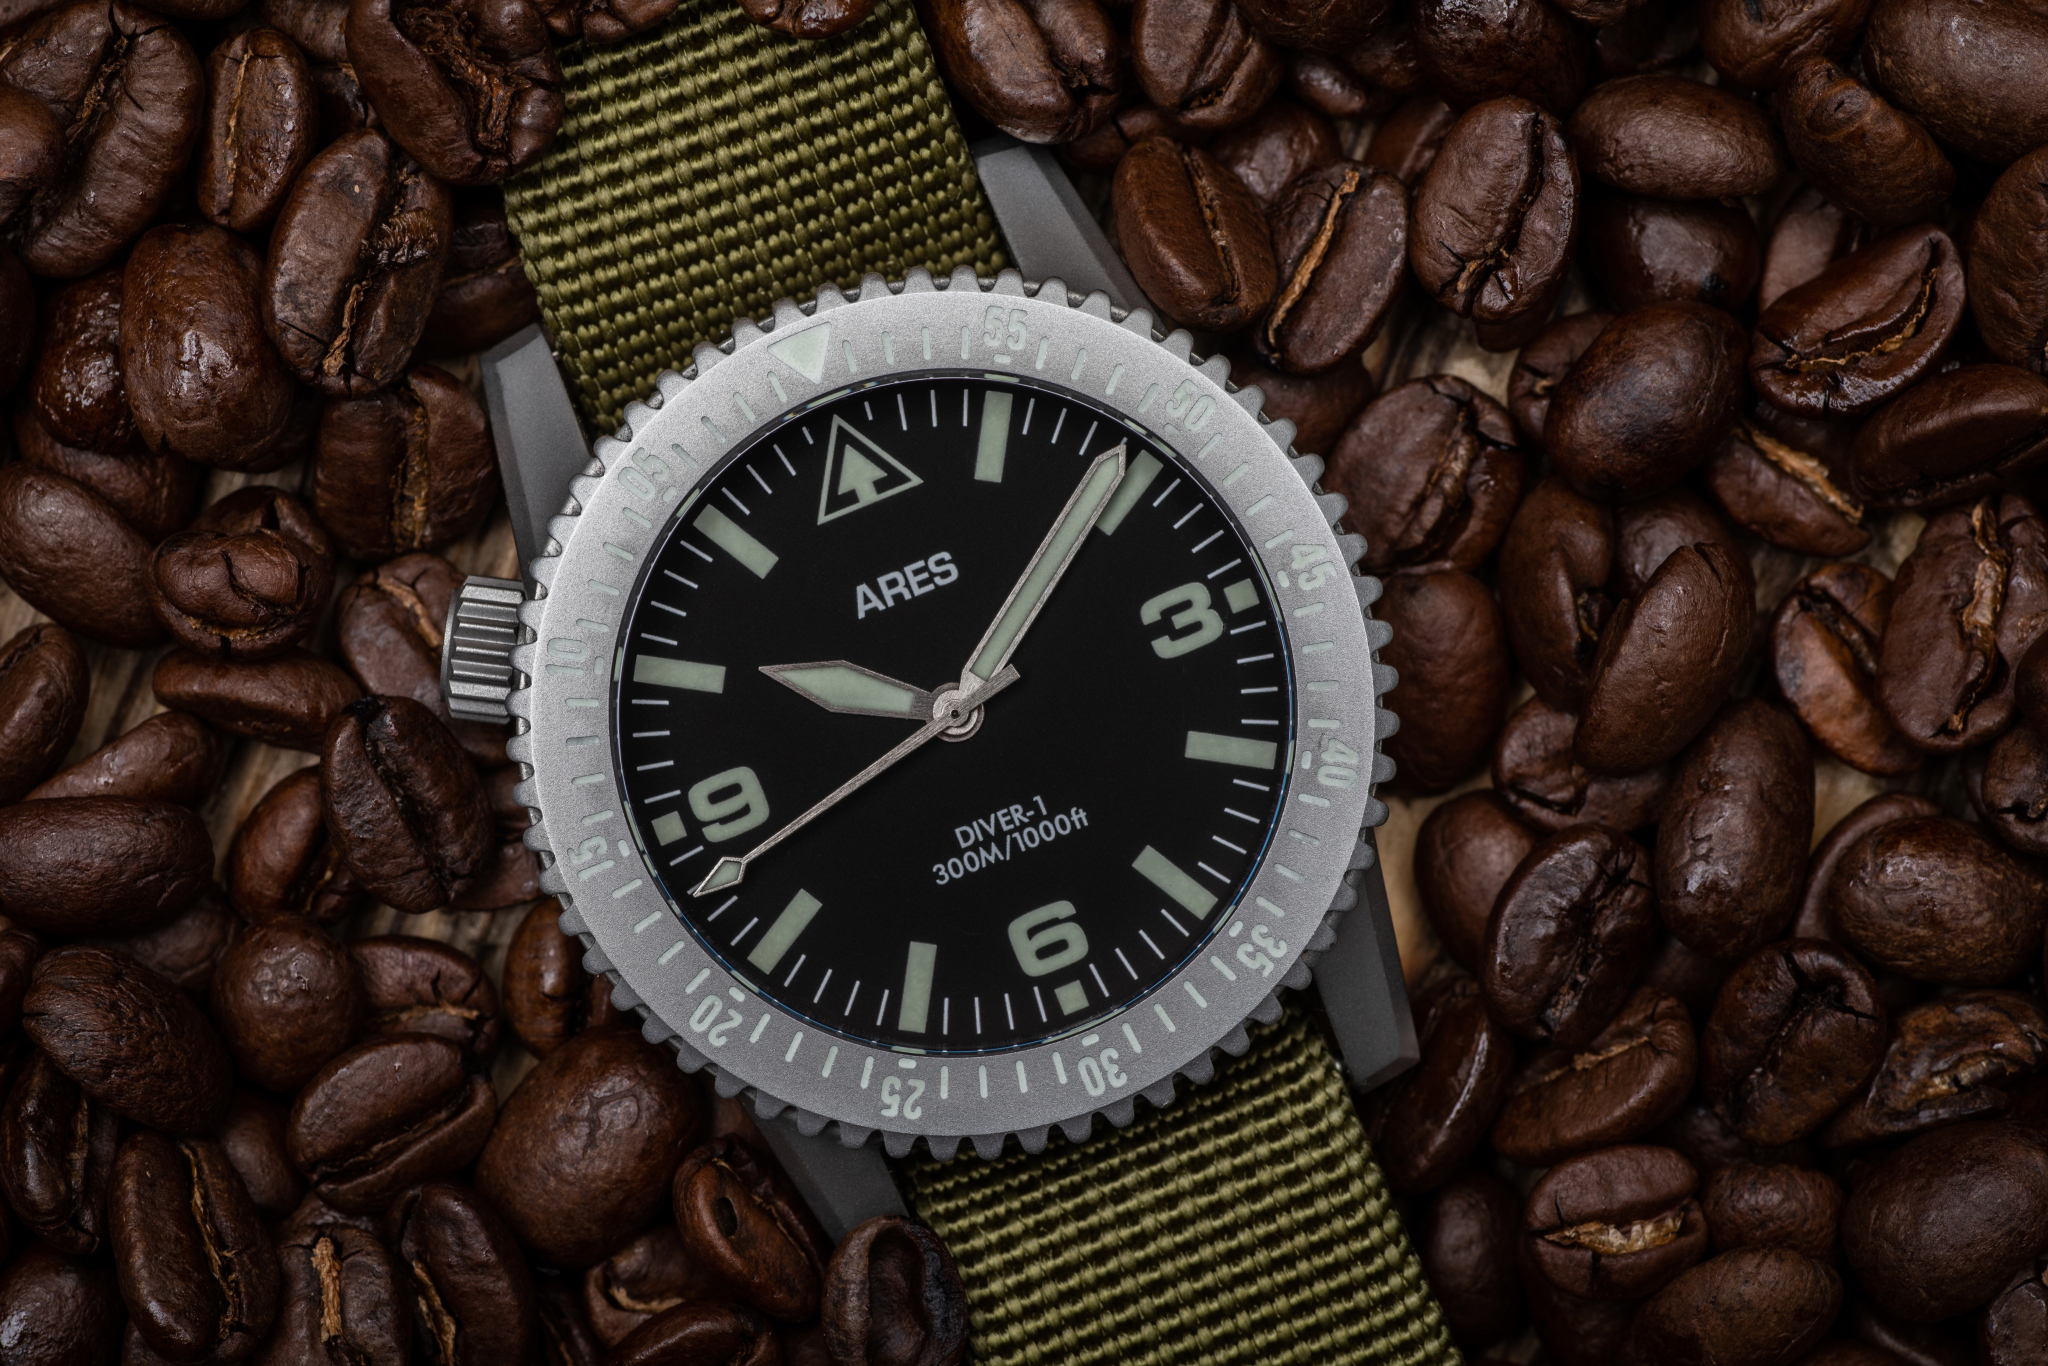 ___Ares Diver-1 BRCC 001-2048 Black Rifle Coffee Company Promotion edited by Brand G Creative 13 NOV 2018.jpg